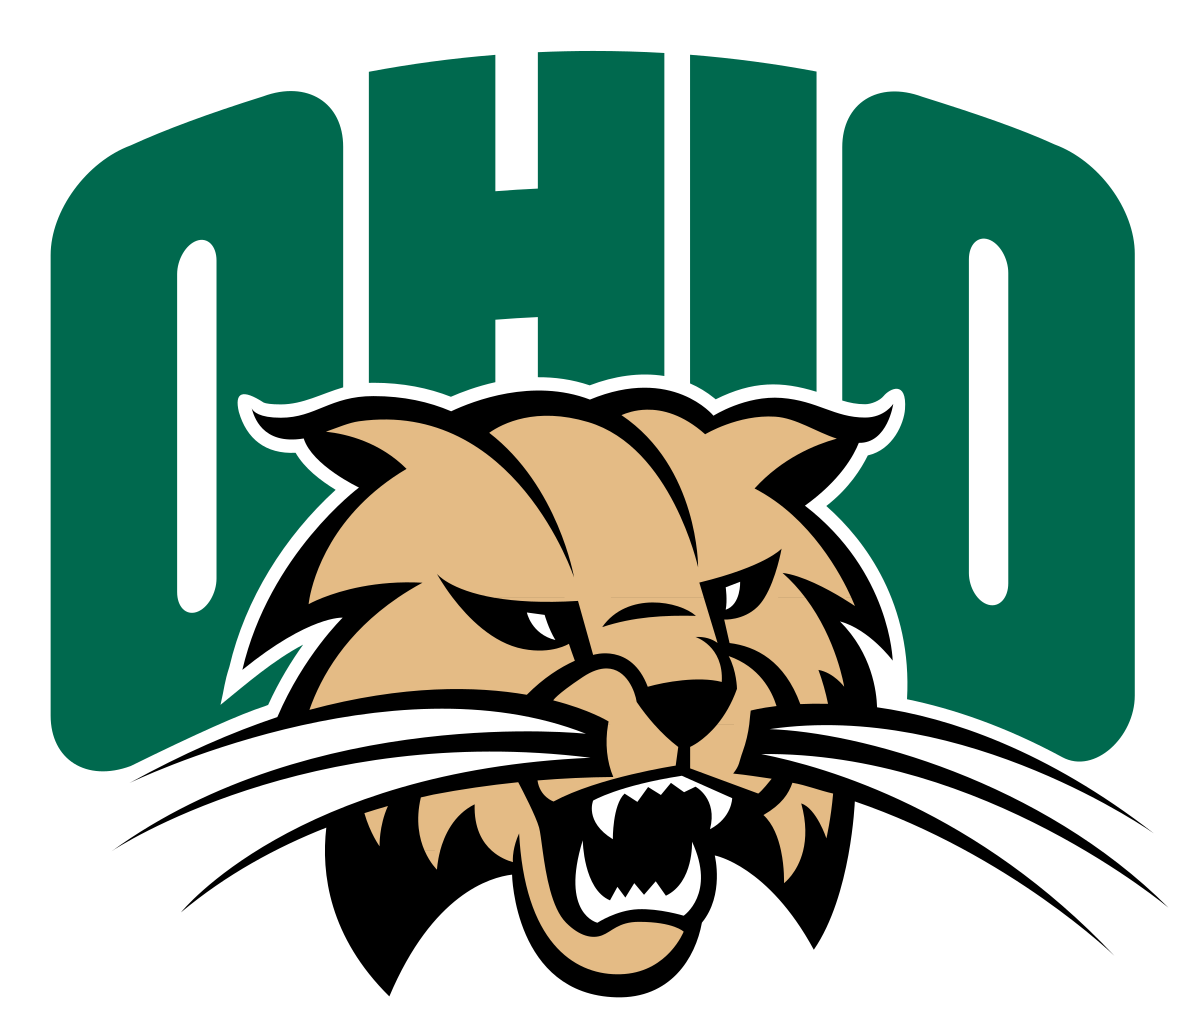 The Ohio Bobcats defeat the Kansas Jayhawks 42 to 30 - ScoreStream jpg free stock